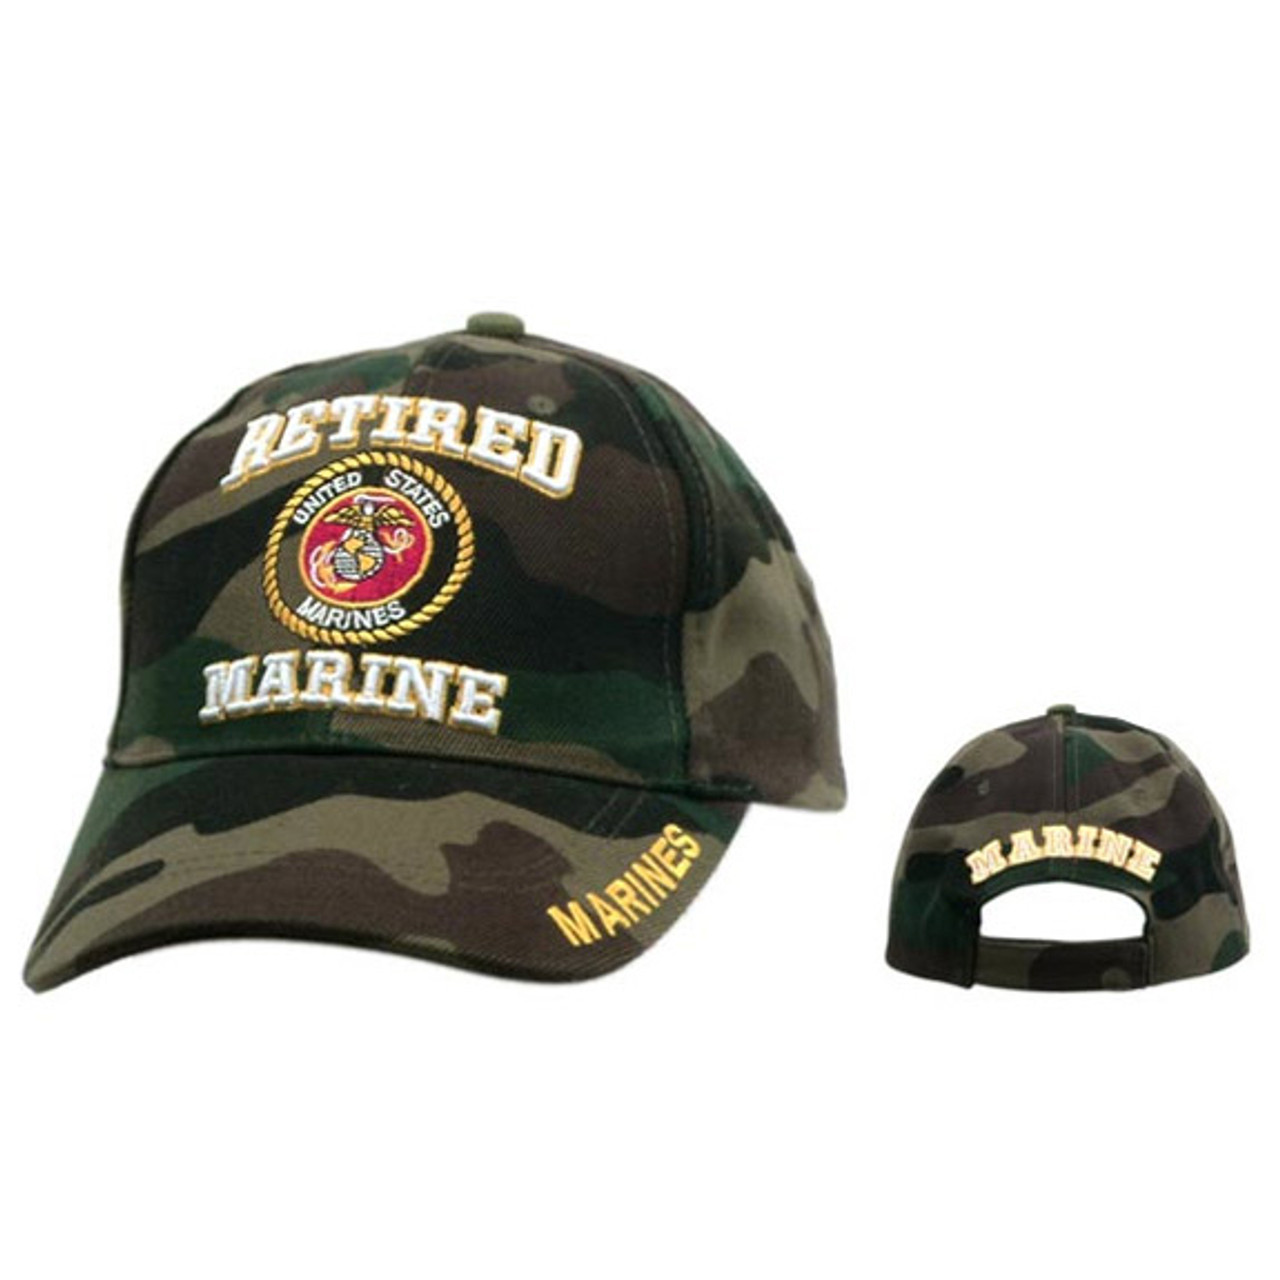 Wholesale Baseball Cap C131 (1 pc.) Retired Marine Camo